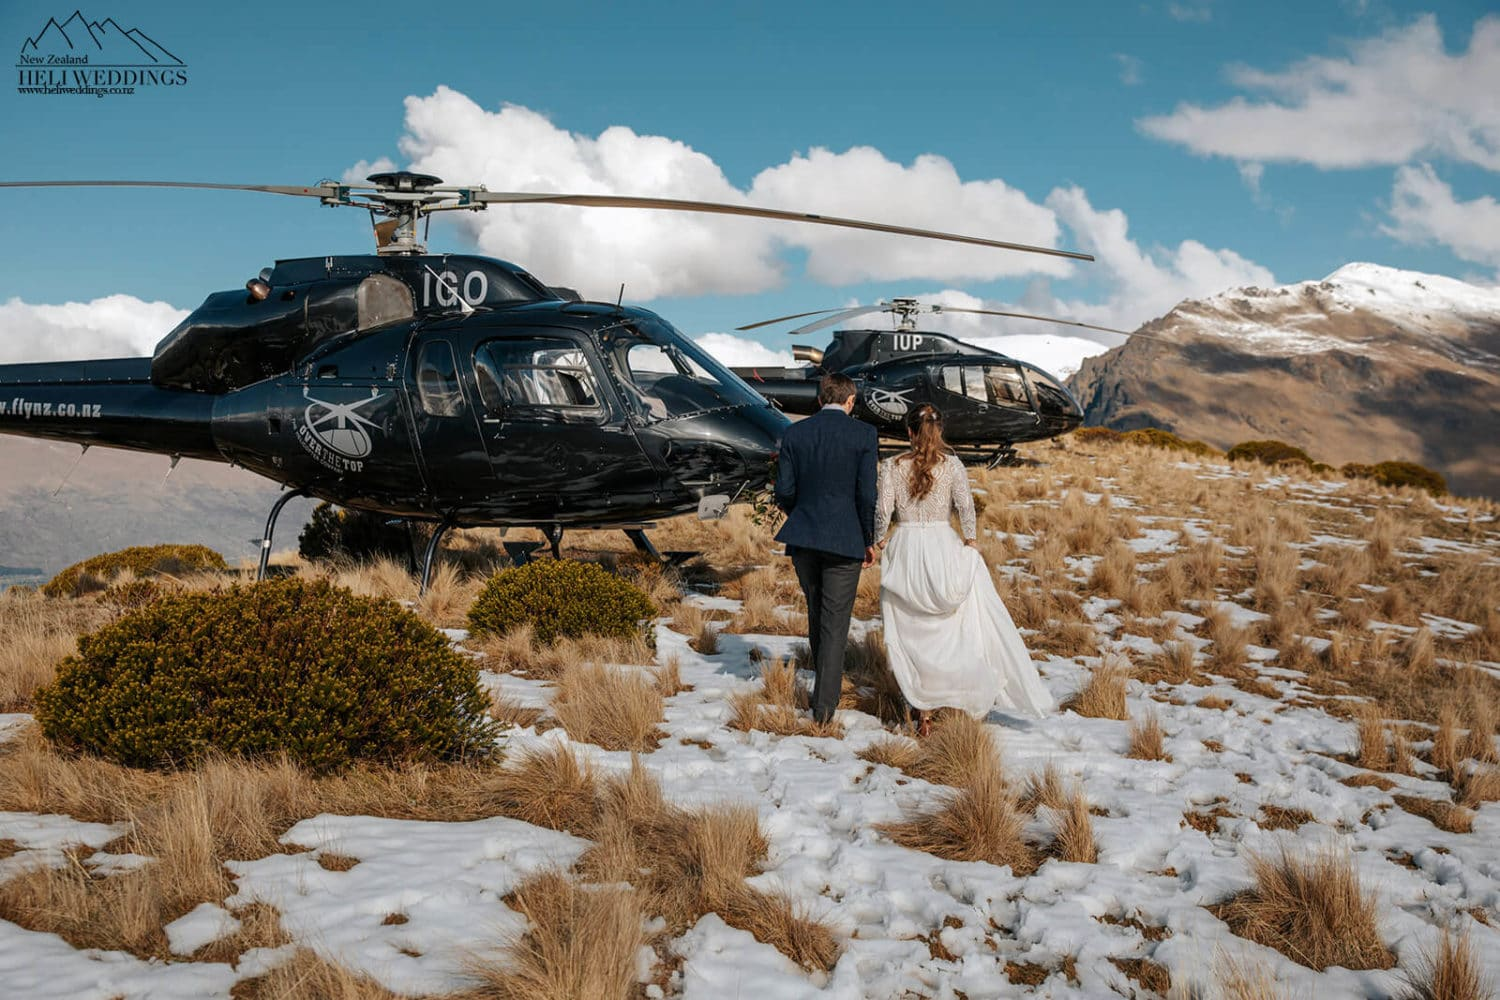 Walking to the helicopters at Queenstown wedding